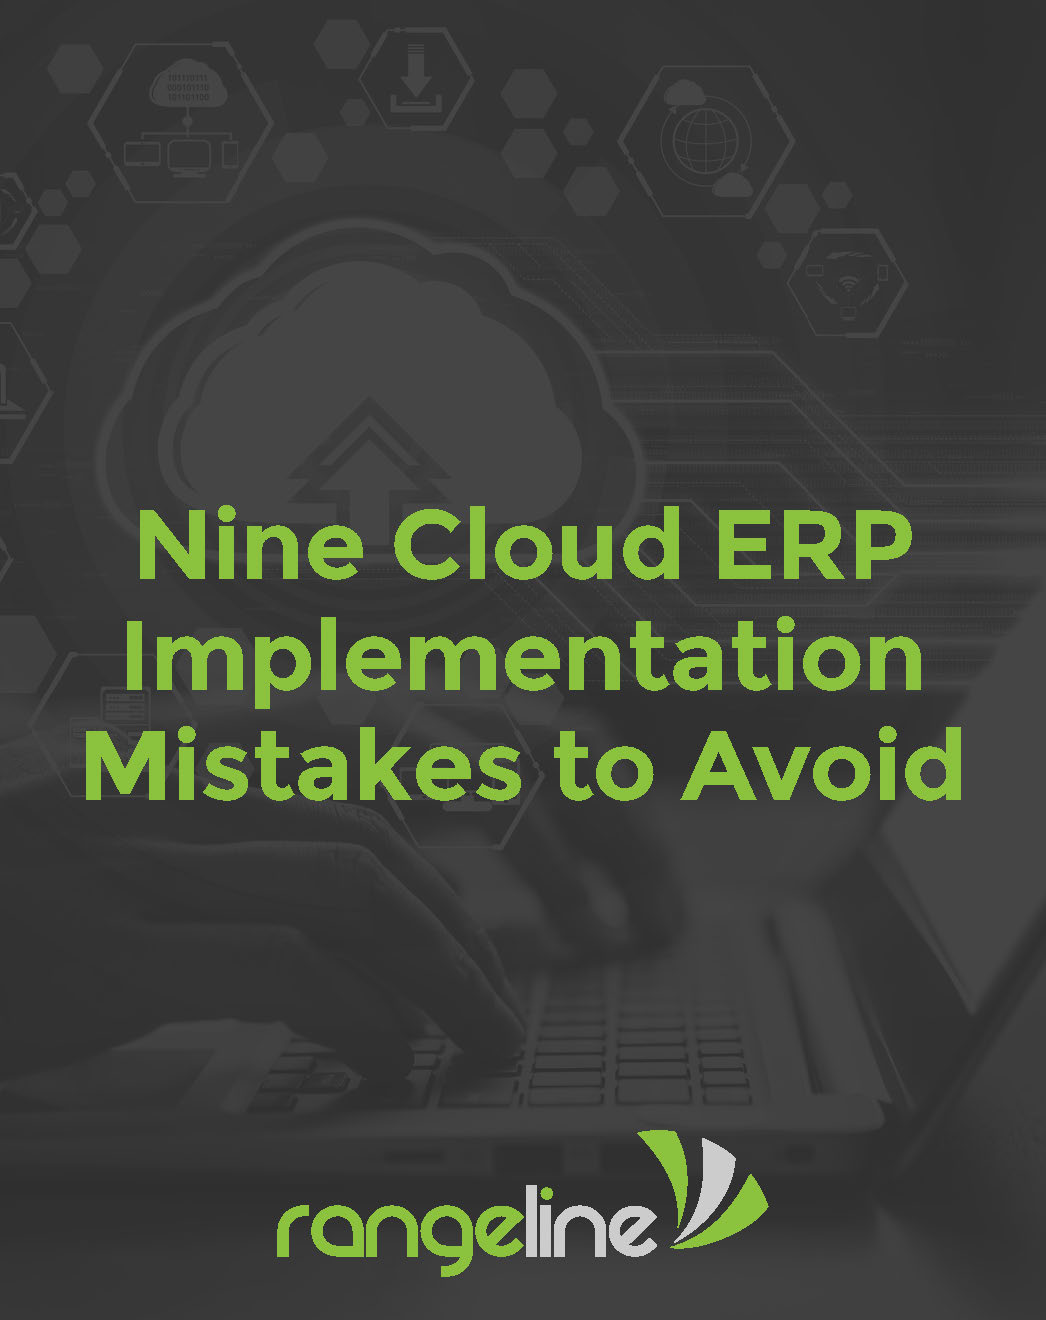 Nine Cloud ERP Implementation Mistakes to Avoid